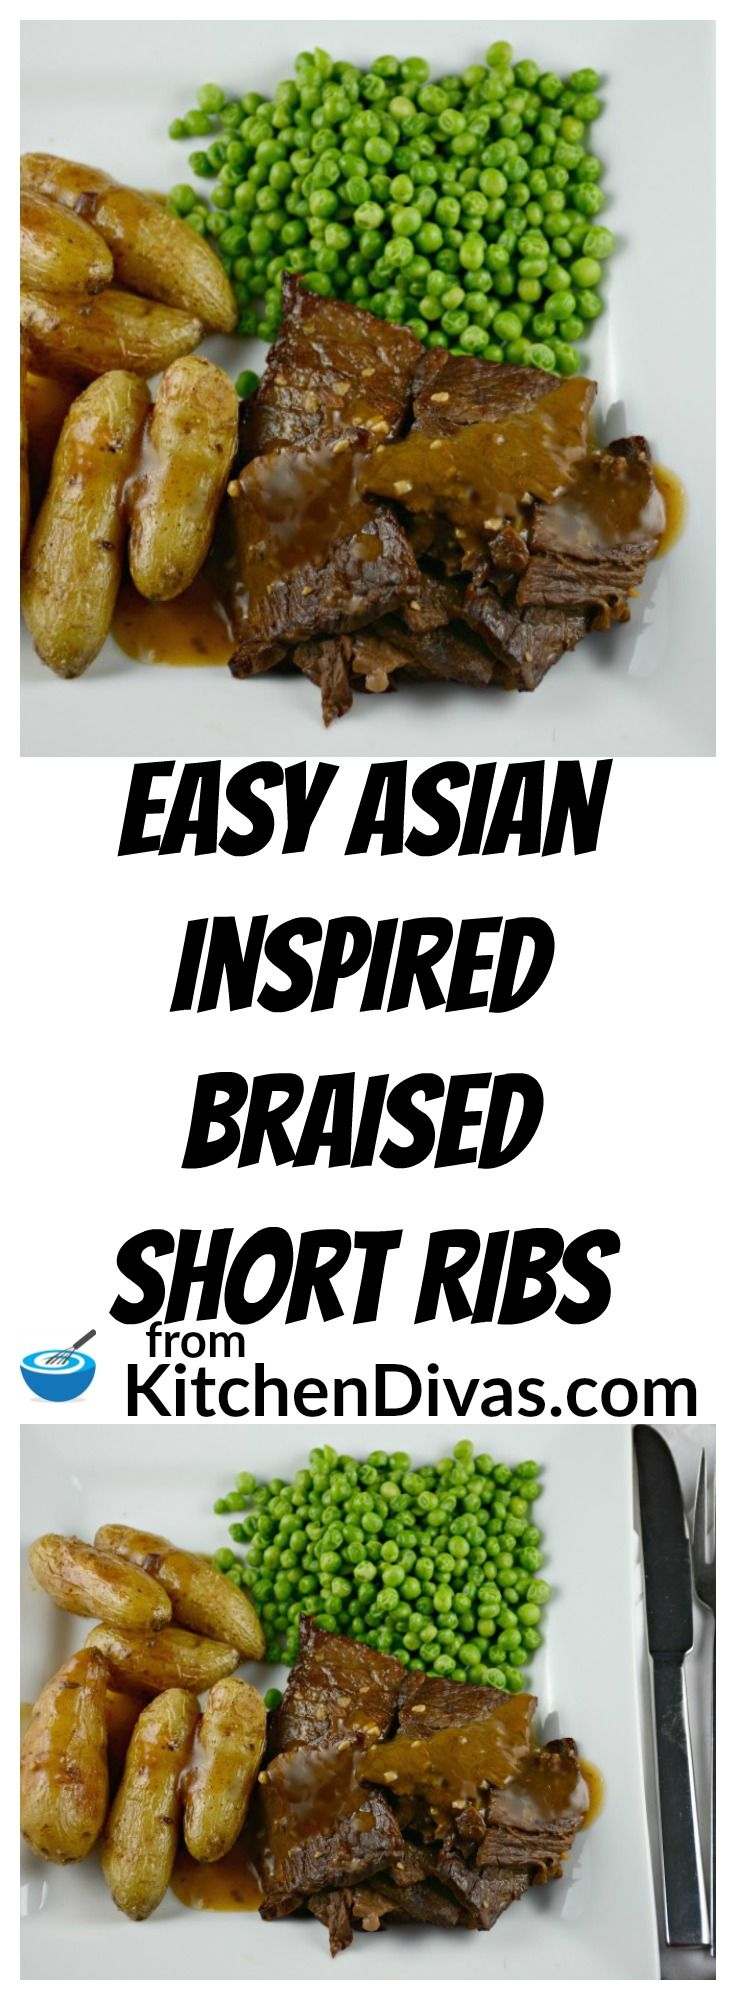 This recipe for Asian Inspired Braised Short Ribs produces the most tender and flavorful slices of slices of meat every time.  Whether you use bone in or boneless short ribs this recipe is a definite keeper.